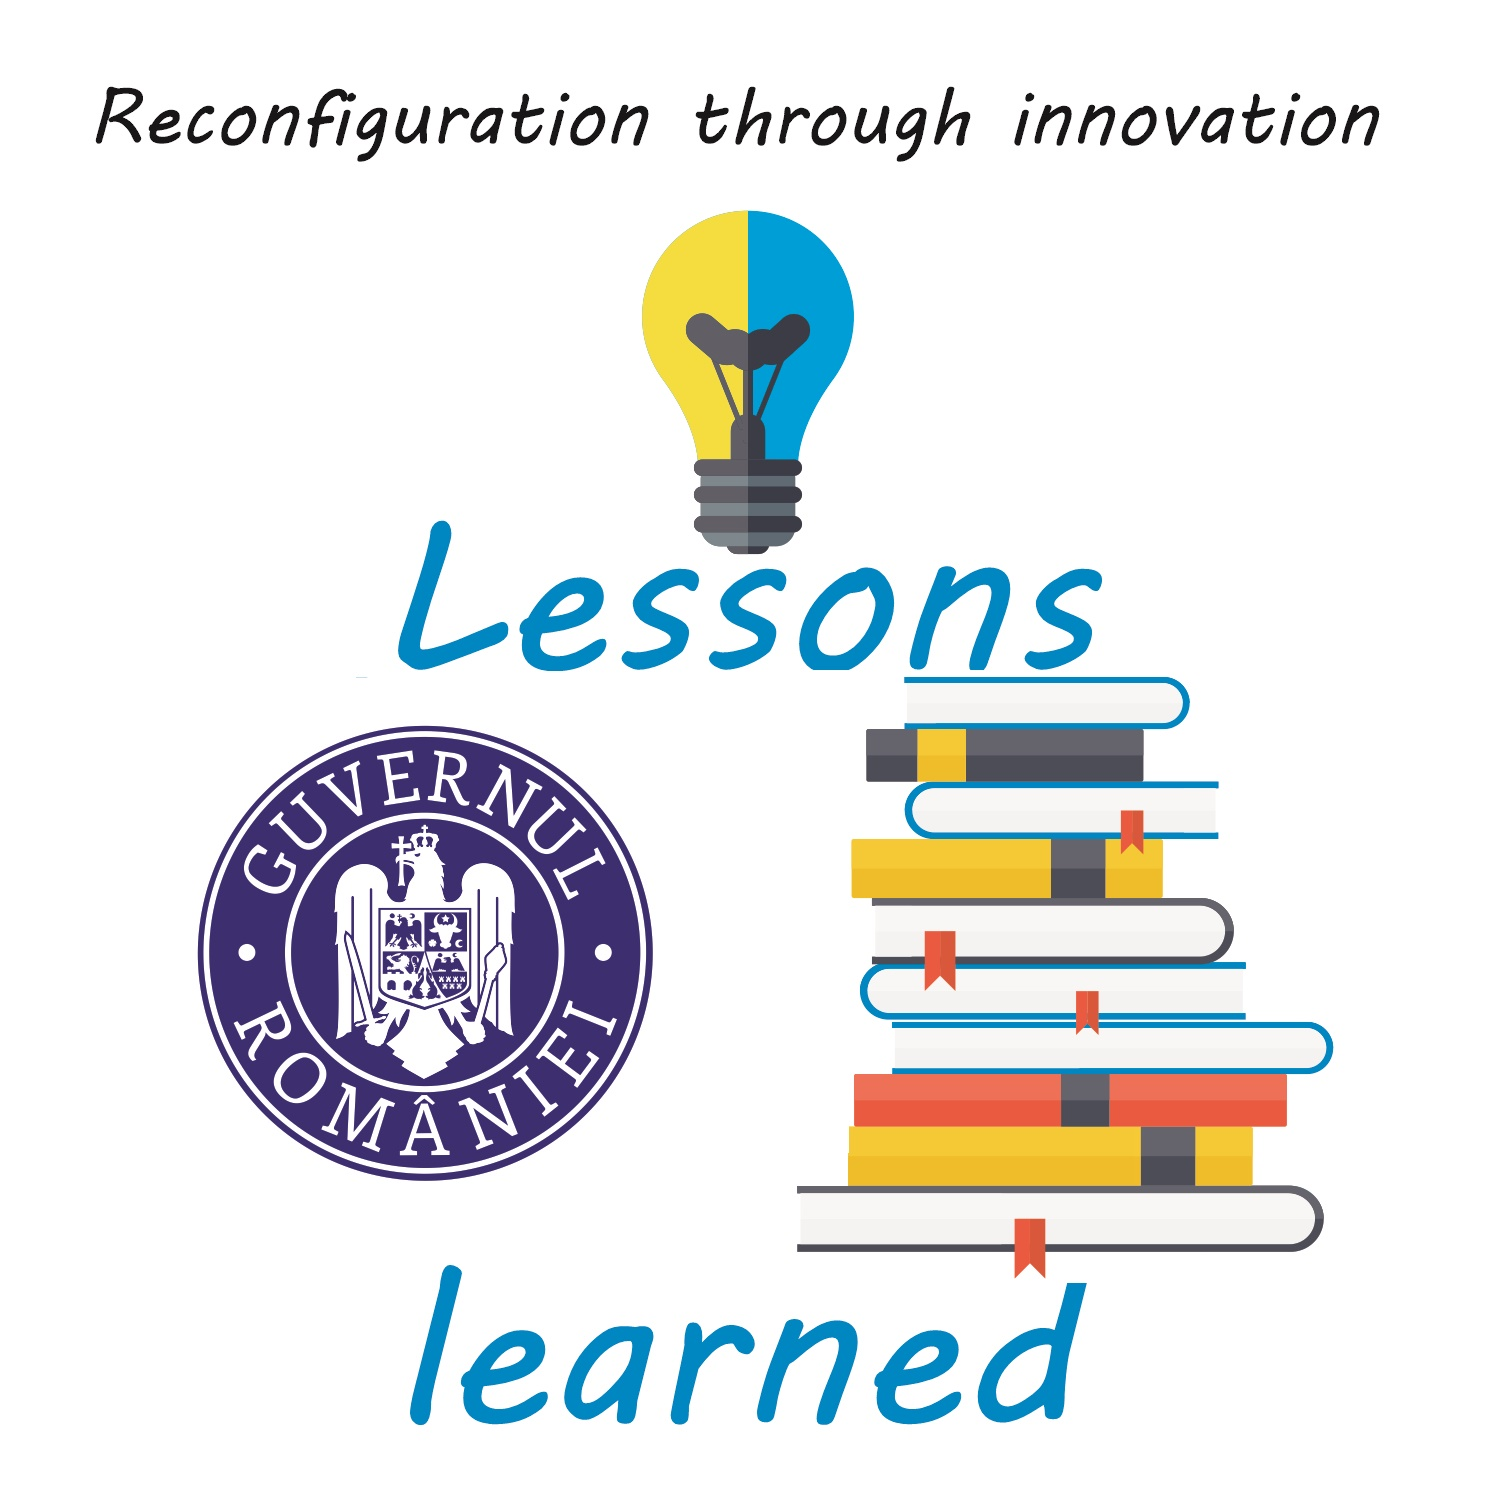 Reconsideration through innovation: Lessons Learned